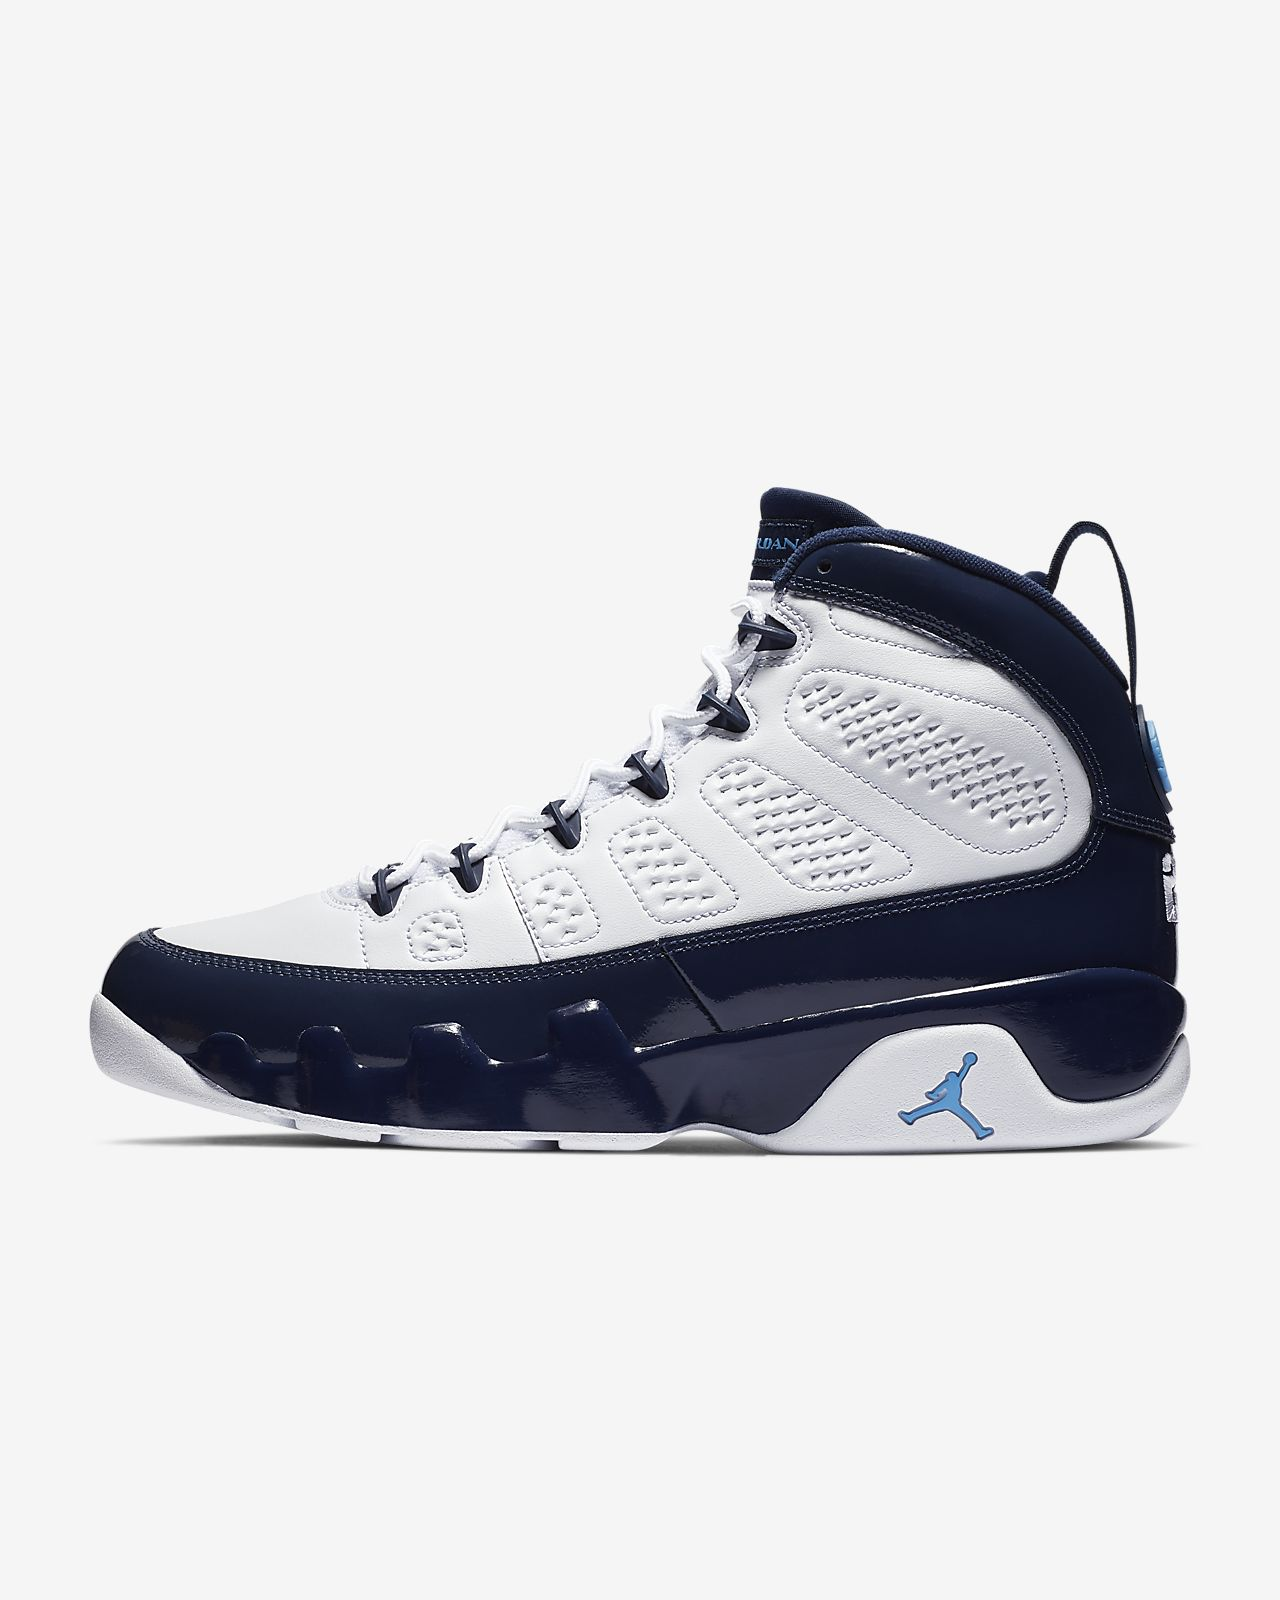 separation shoes 48755 3910f Men s Shoe. Air Jordan 9 Retro